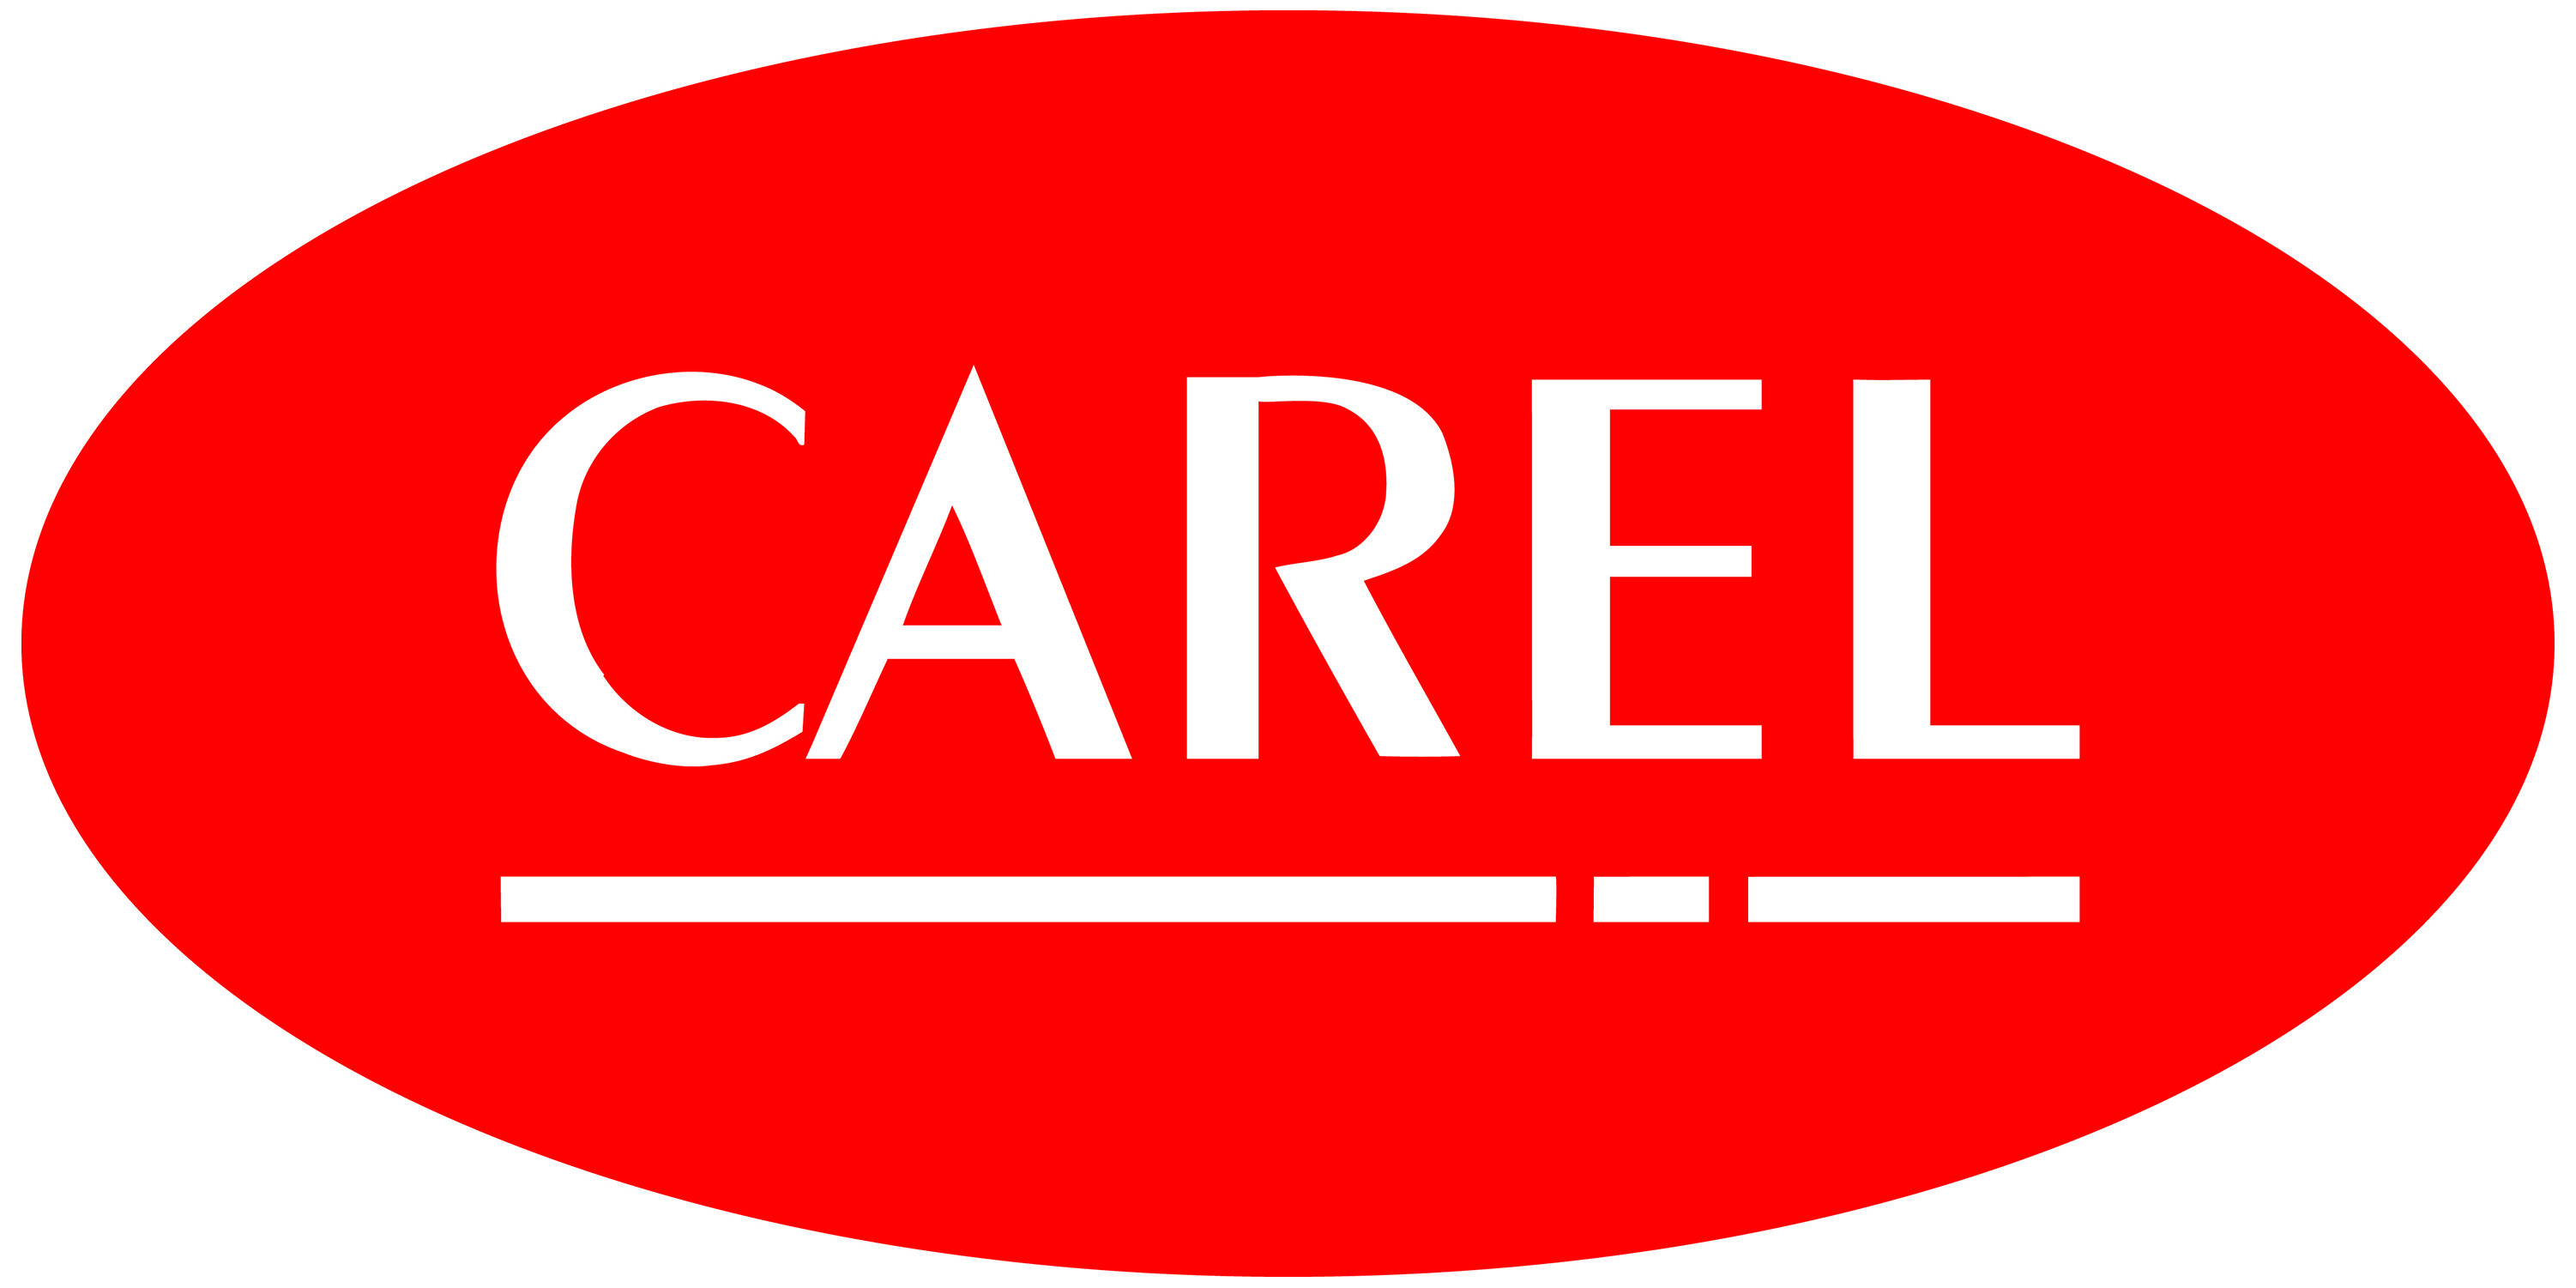 CAREL - Germany